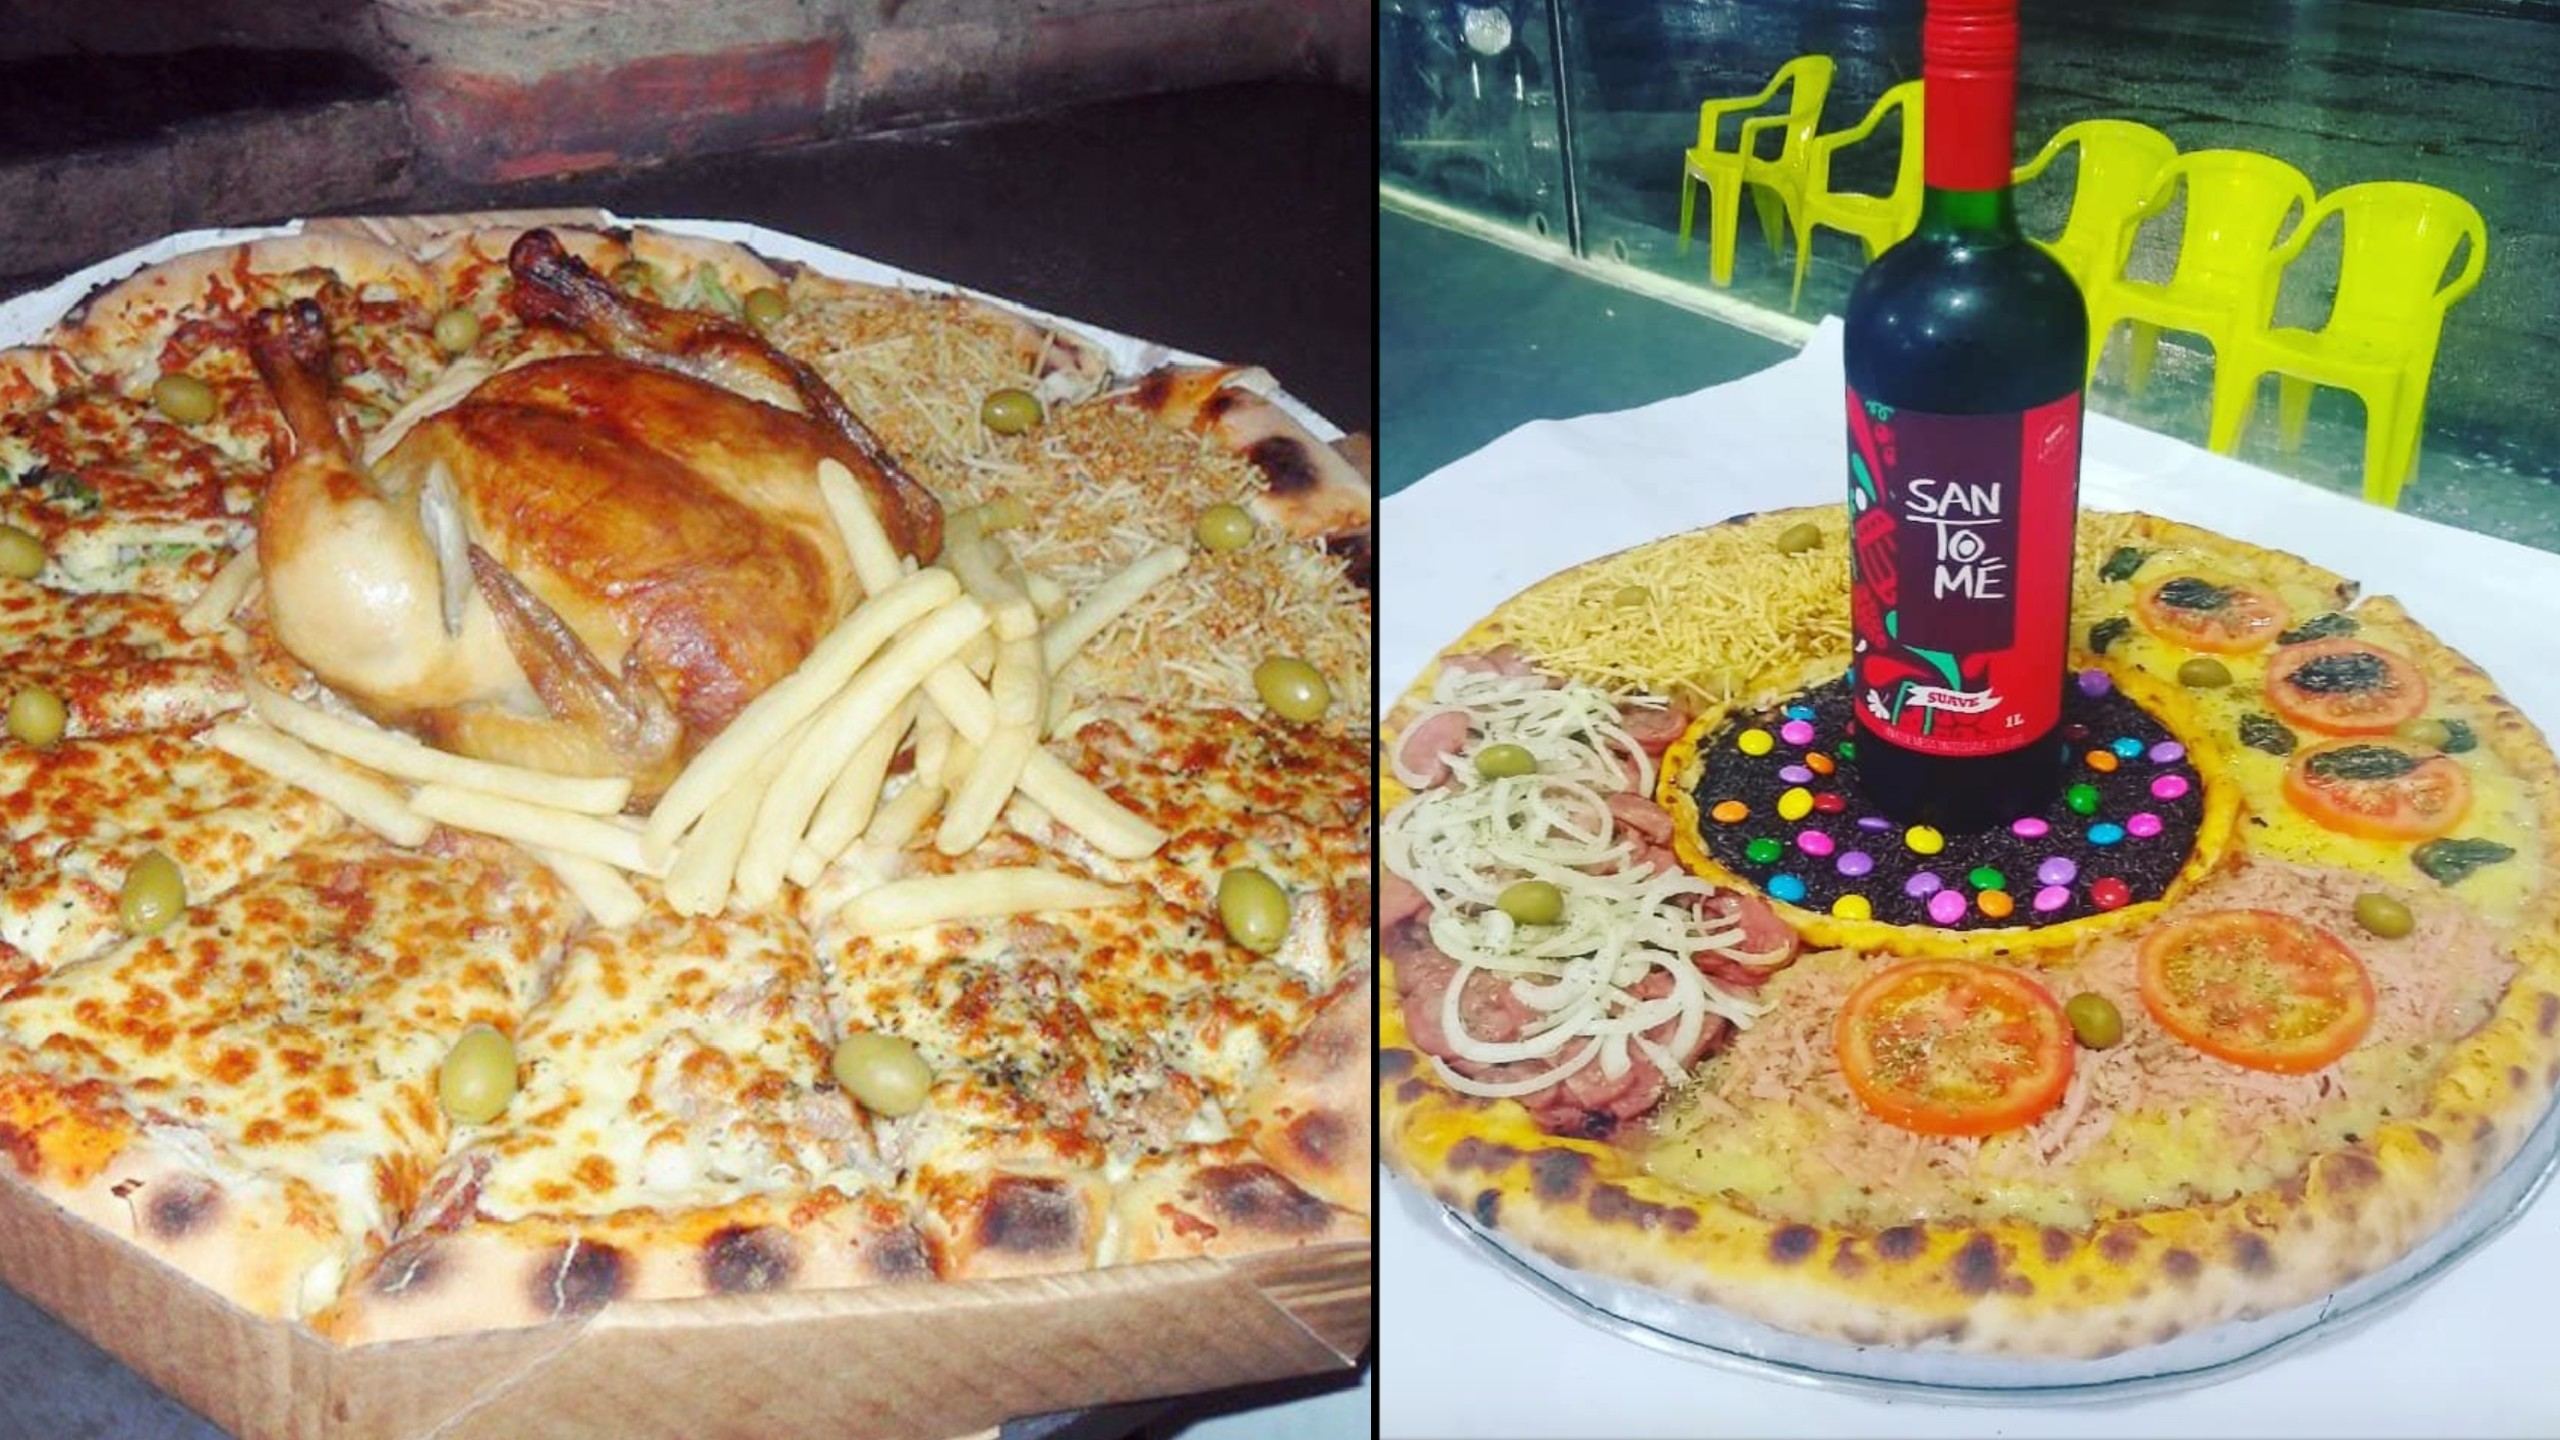 Pizza Restaurant in Brazil Creates Some Unexpected Pies